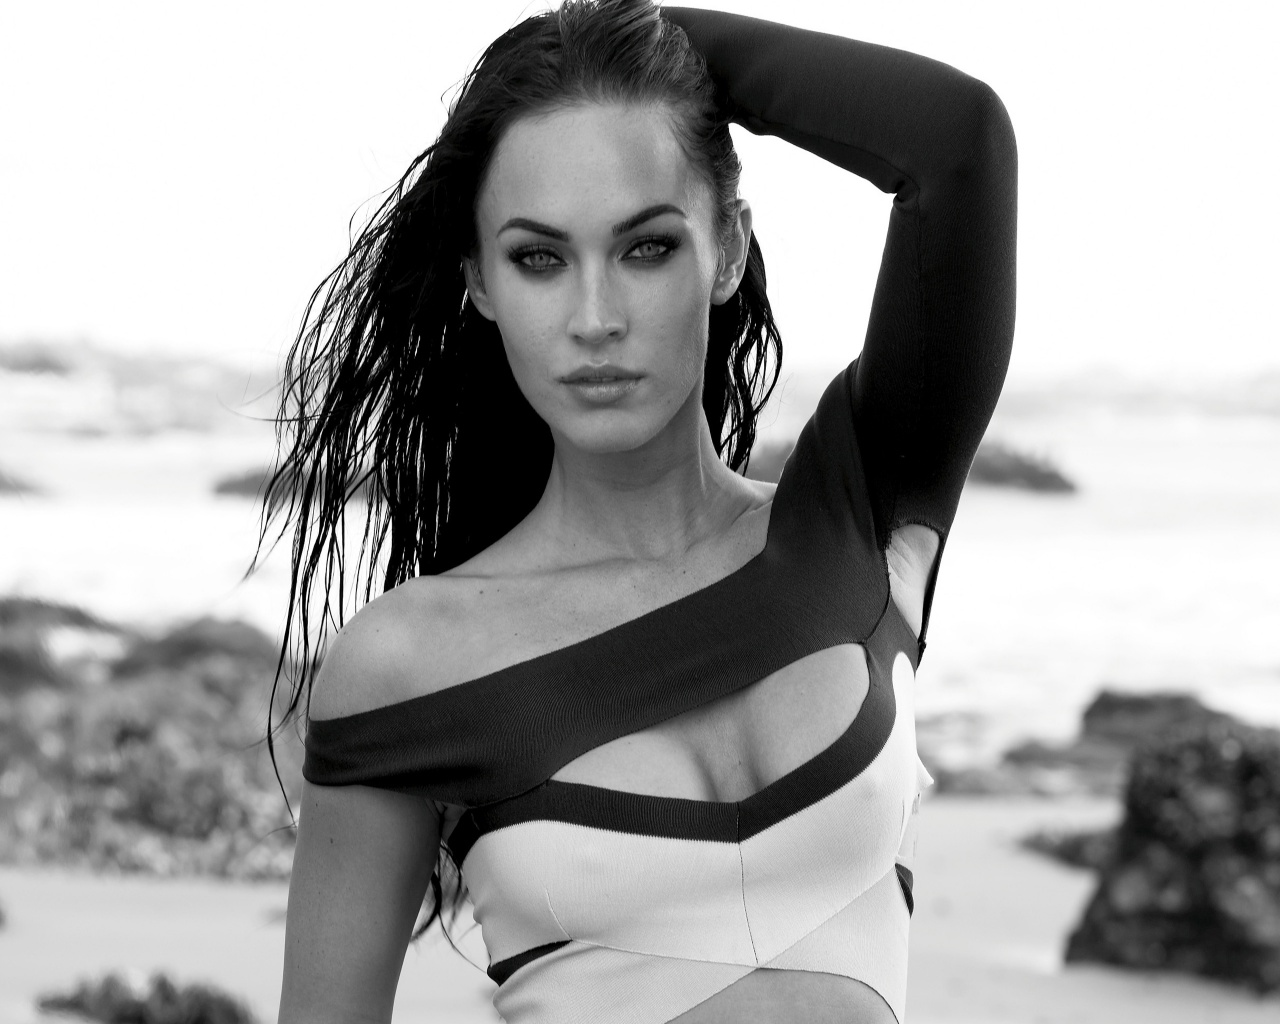 Megan Fox 1280x1024 Wallpapers 1280x1024 Wallpapers amp Pictures 1280x1024